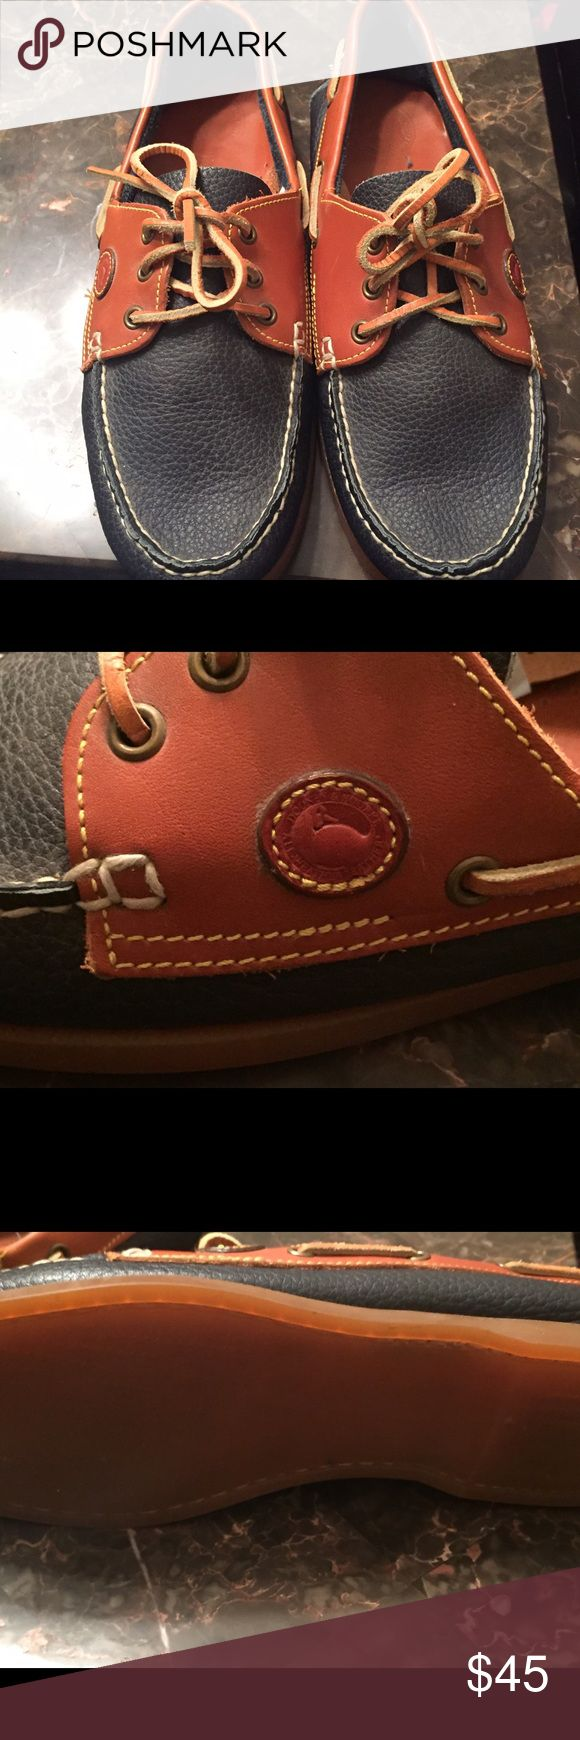 Men's dooney and Bourke boat shoes Dooney an Bourke Men's peddled leather Boat shoes size 11 Dooney & Bourke Shoes Boat Shoes